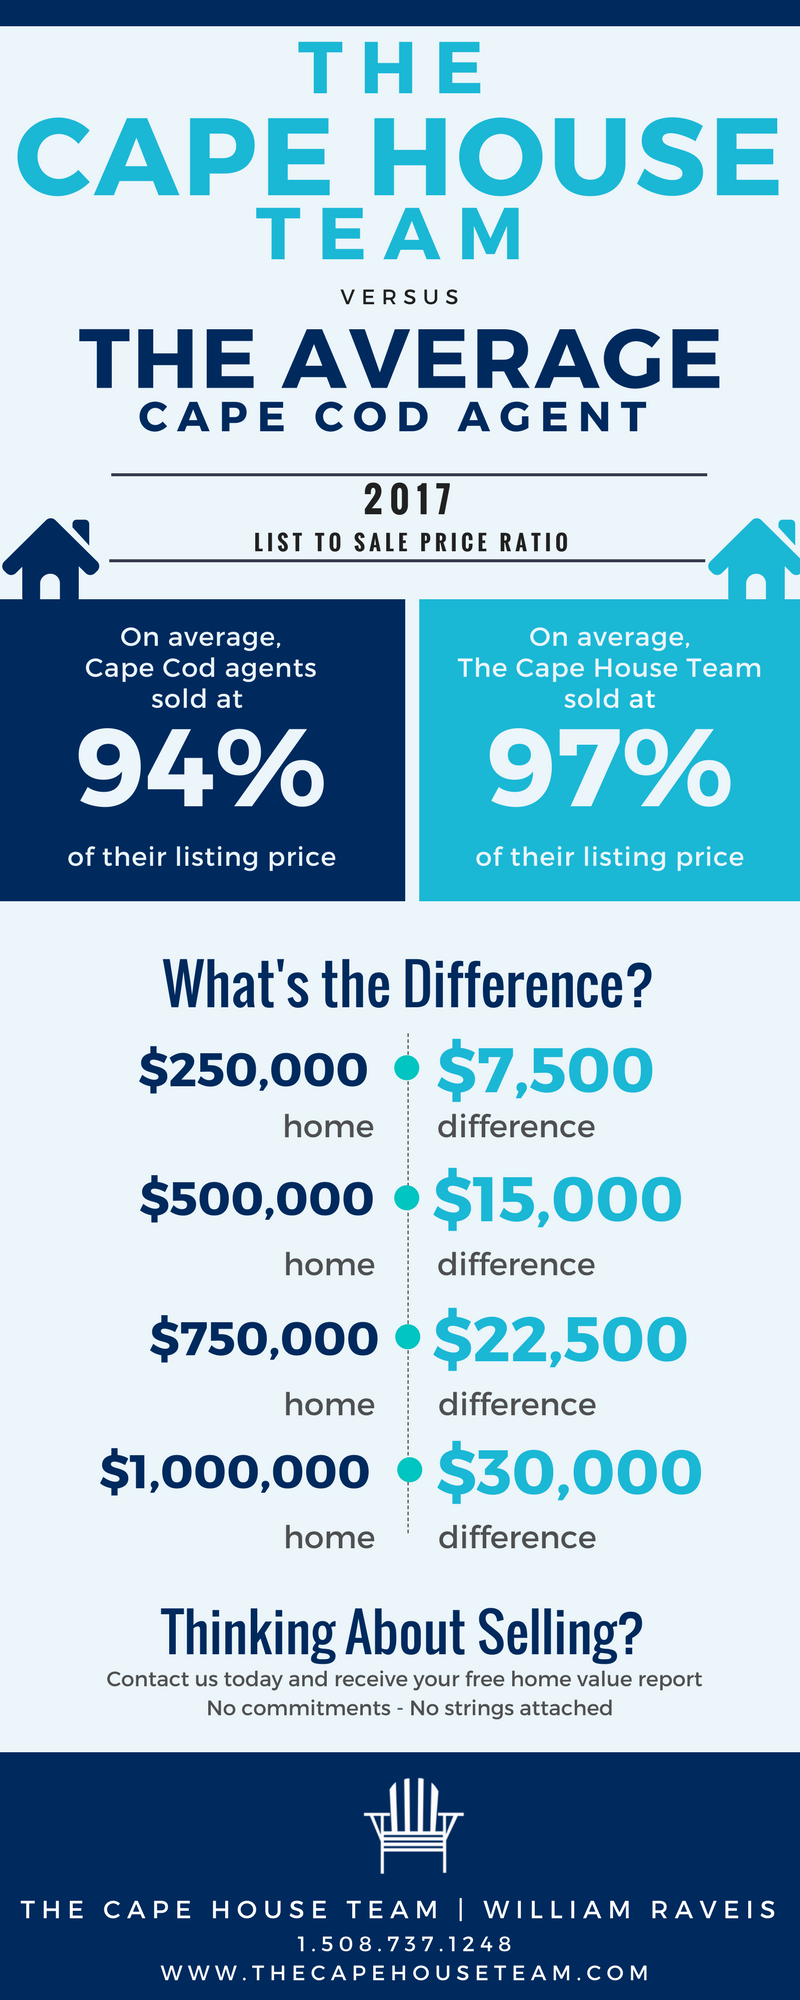 Infographic Comparing the average Cape Cod Real Estate Agent to a Cape House Team agent